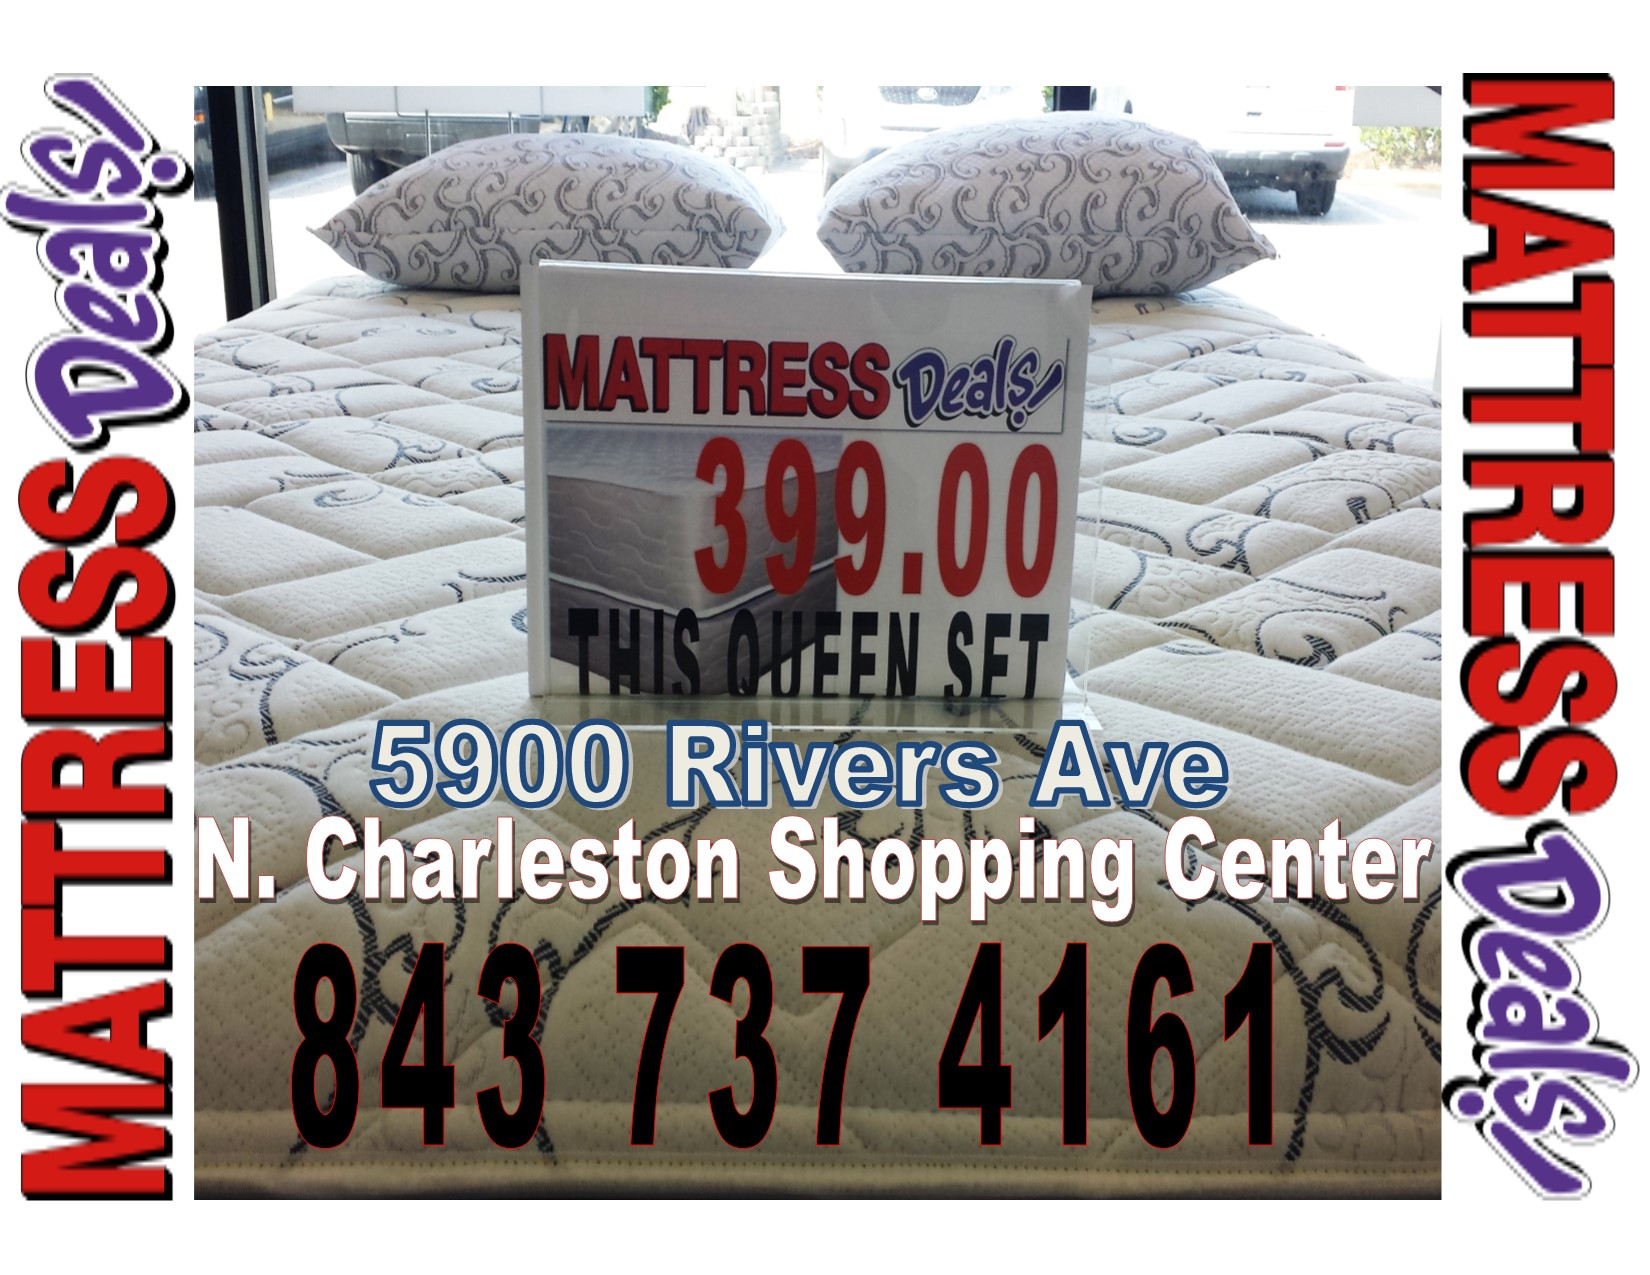 Mattress Deals image 23